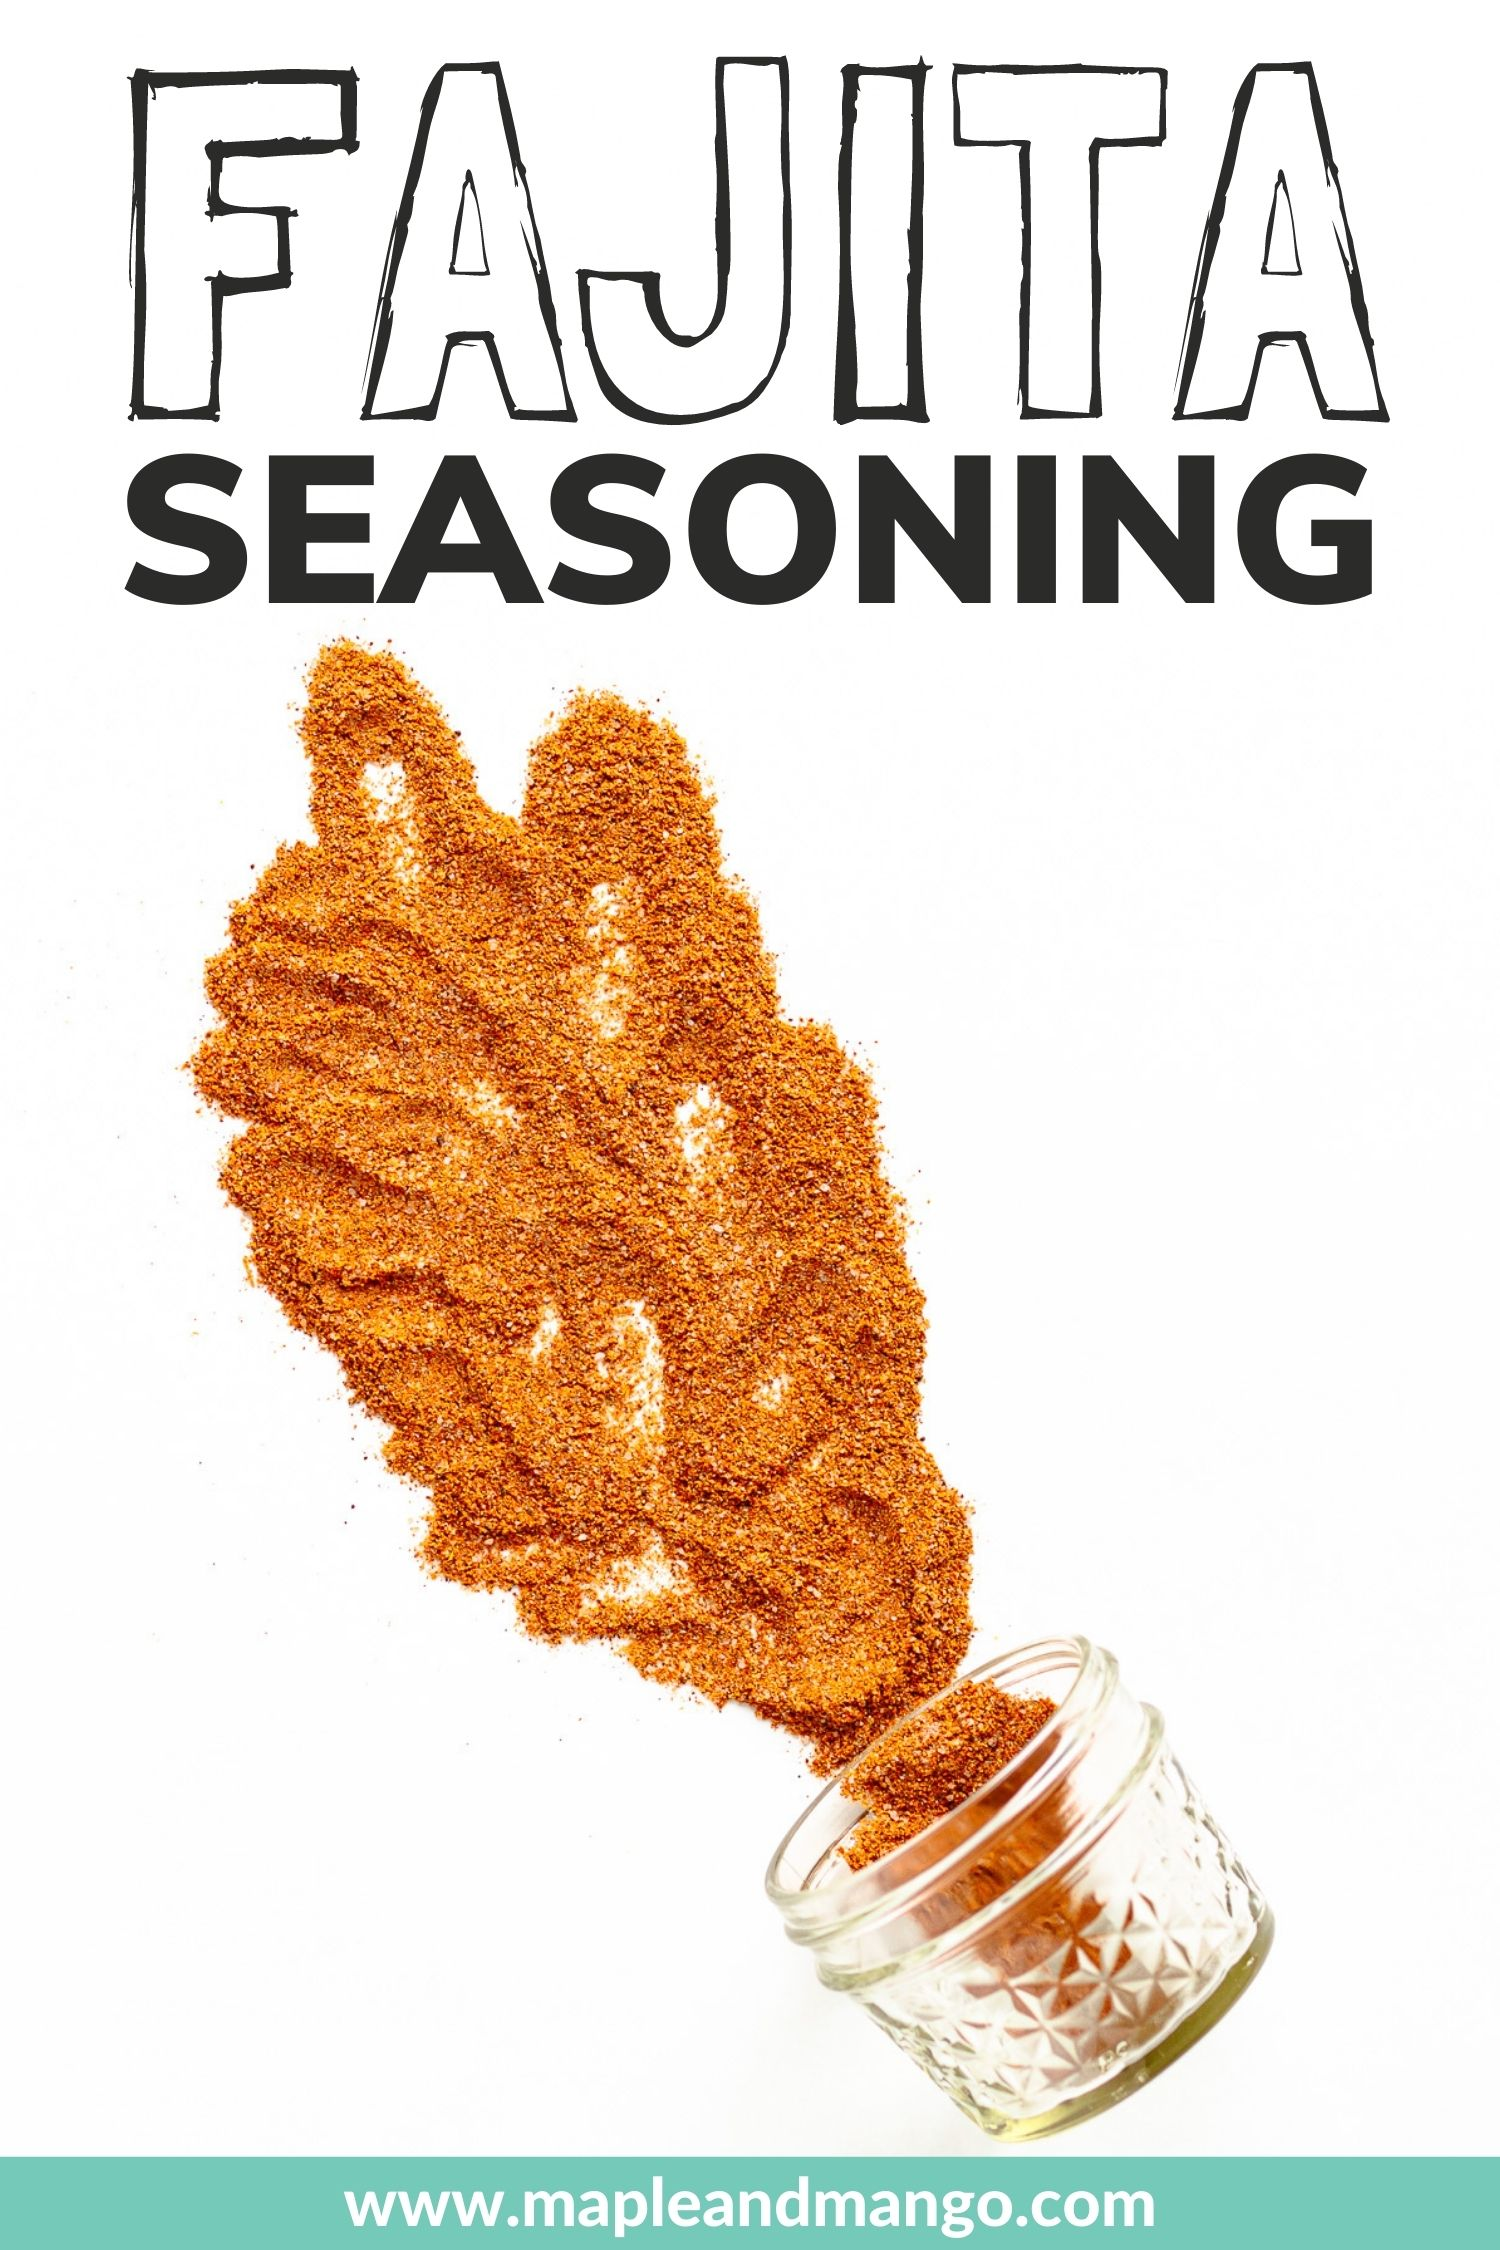 """Seasoning blend spilling out of a small glass jar with text overlay """"Fajita Seasoning""""."""